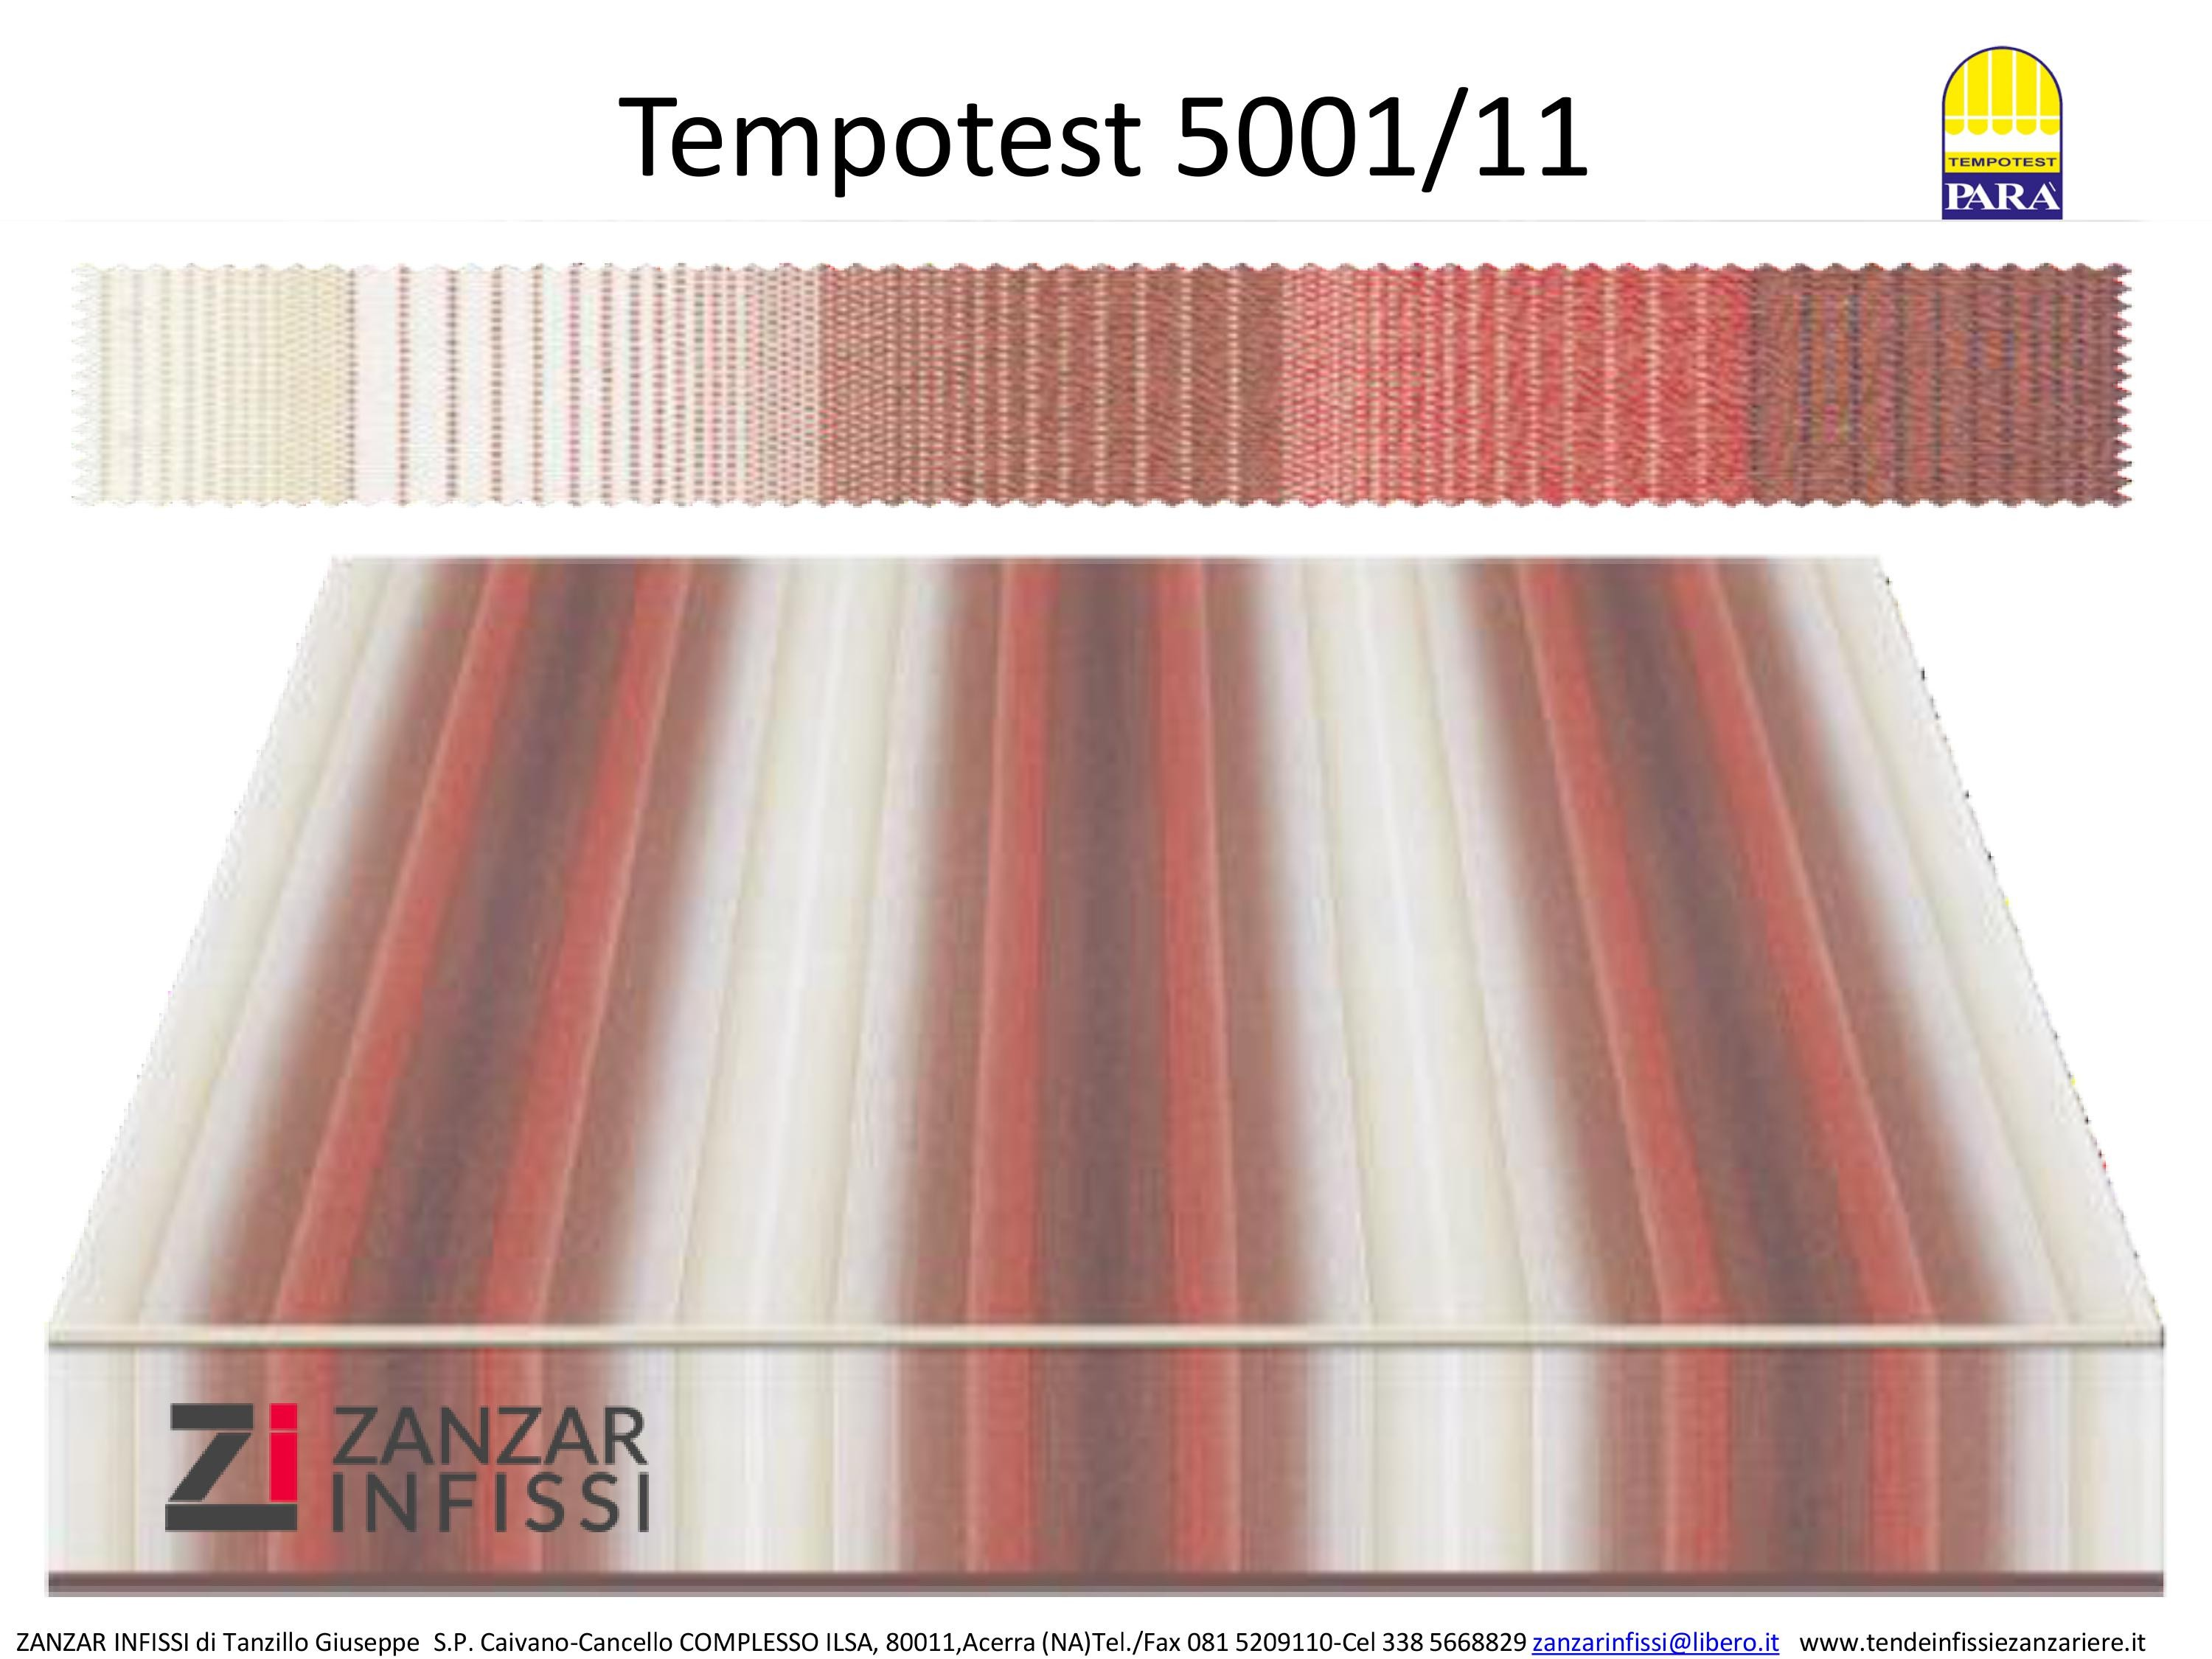 Tempotest 5001/11